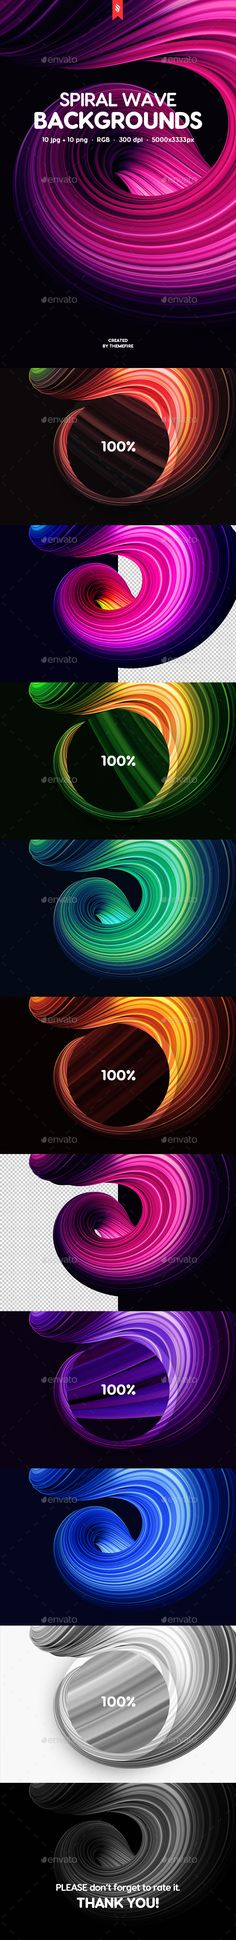 Buy 20 Abstract Strange Shape Backgrounds by themefire on GraphicRiver. This pack contains 10 jpg and 10 png abstract linear spiral wave backgrounds for your projects. Triangle Background, Waves Background, Watercolor Background, Textured Background, Material Design Background, Background Patterns, Background Images Wallpapers, Wallpaper Wallpapers, Hipster Triangle